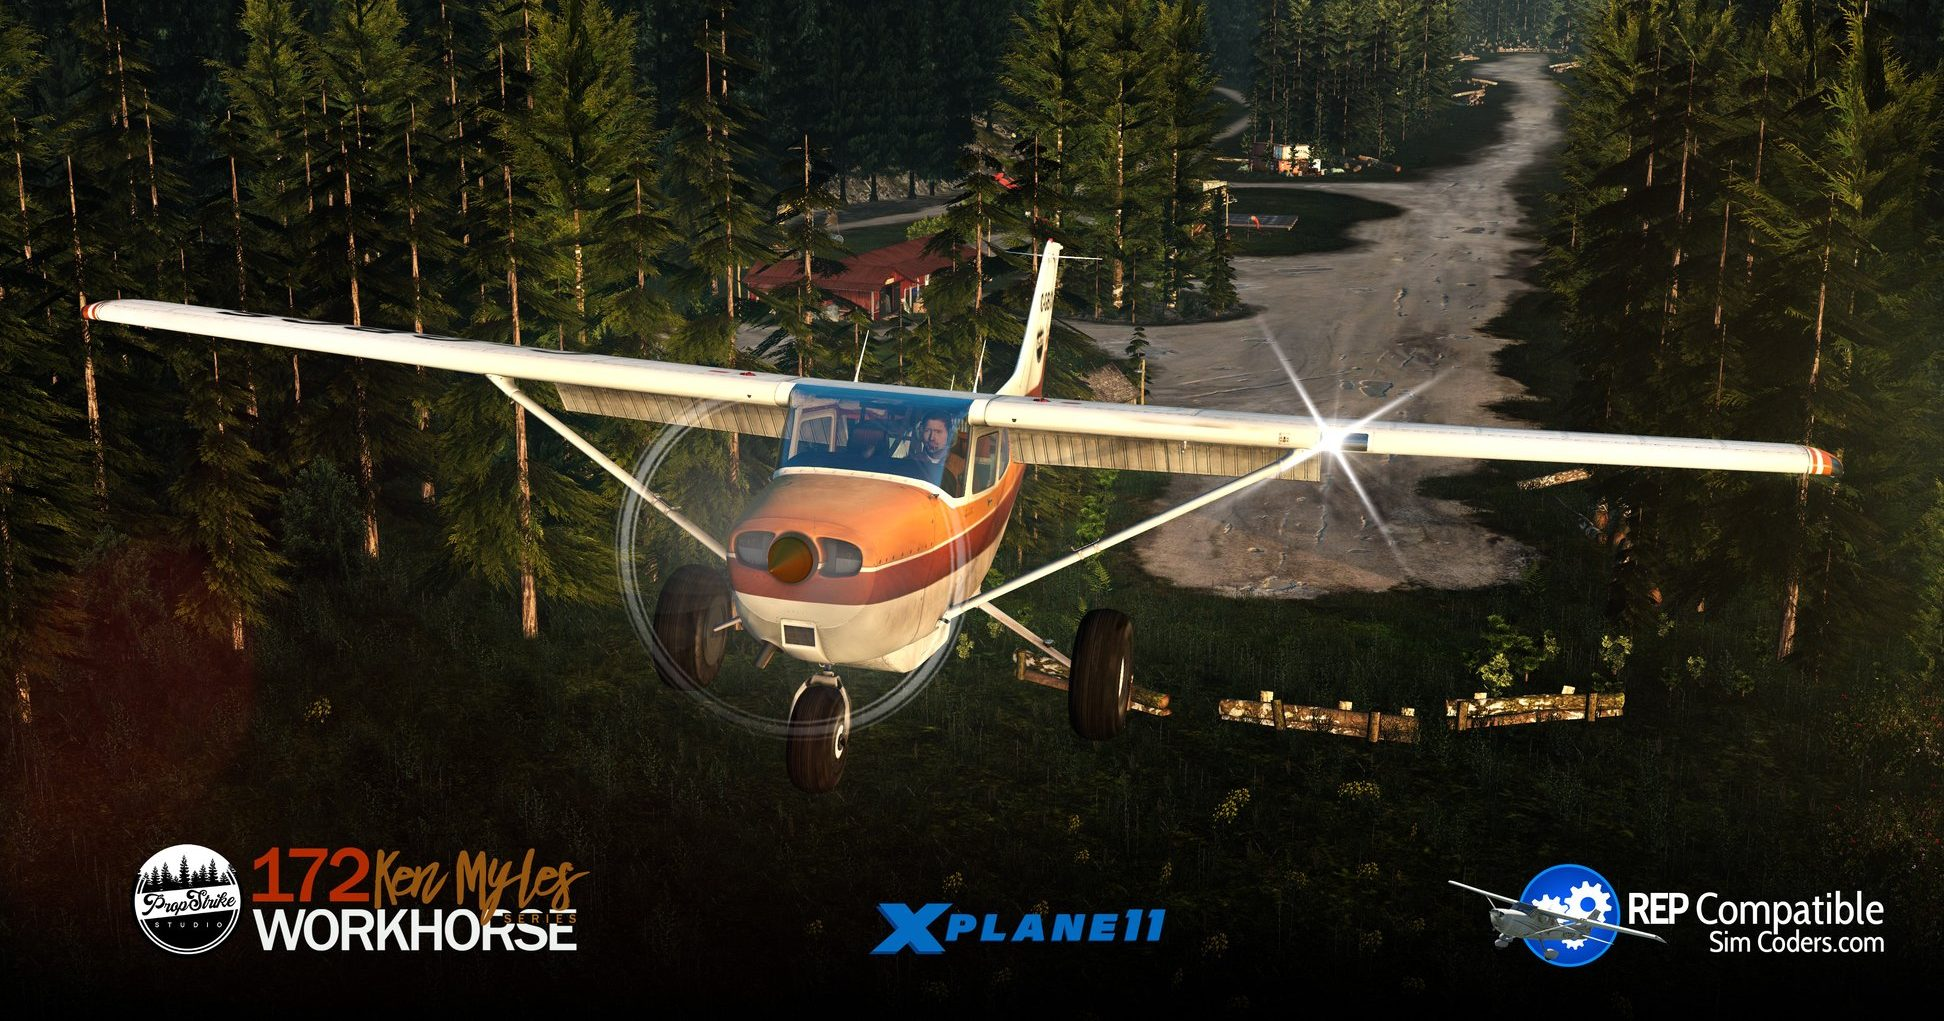 The free Cessna 172 Bush Kit for X-Plane 11 by PropStrike Studio